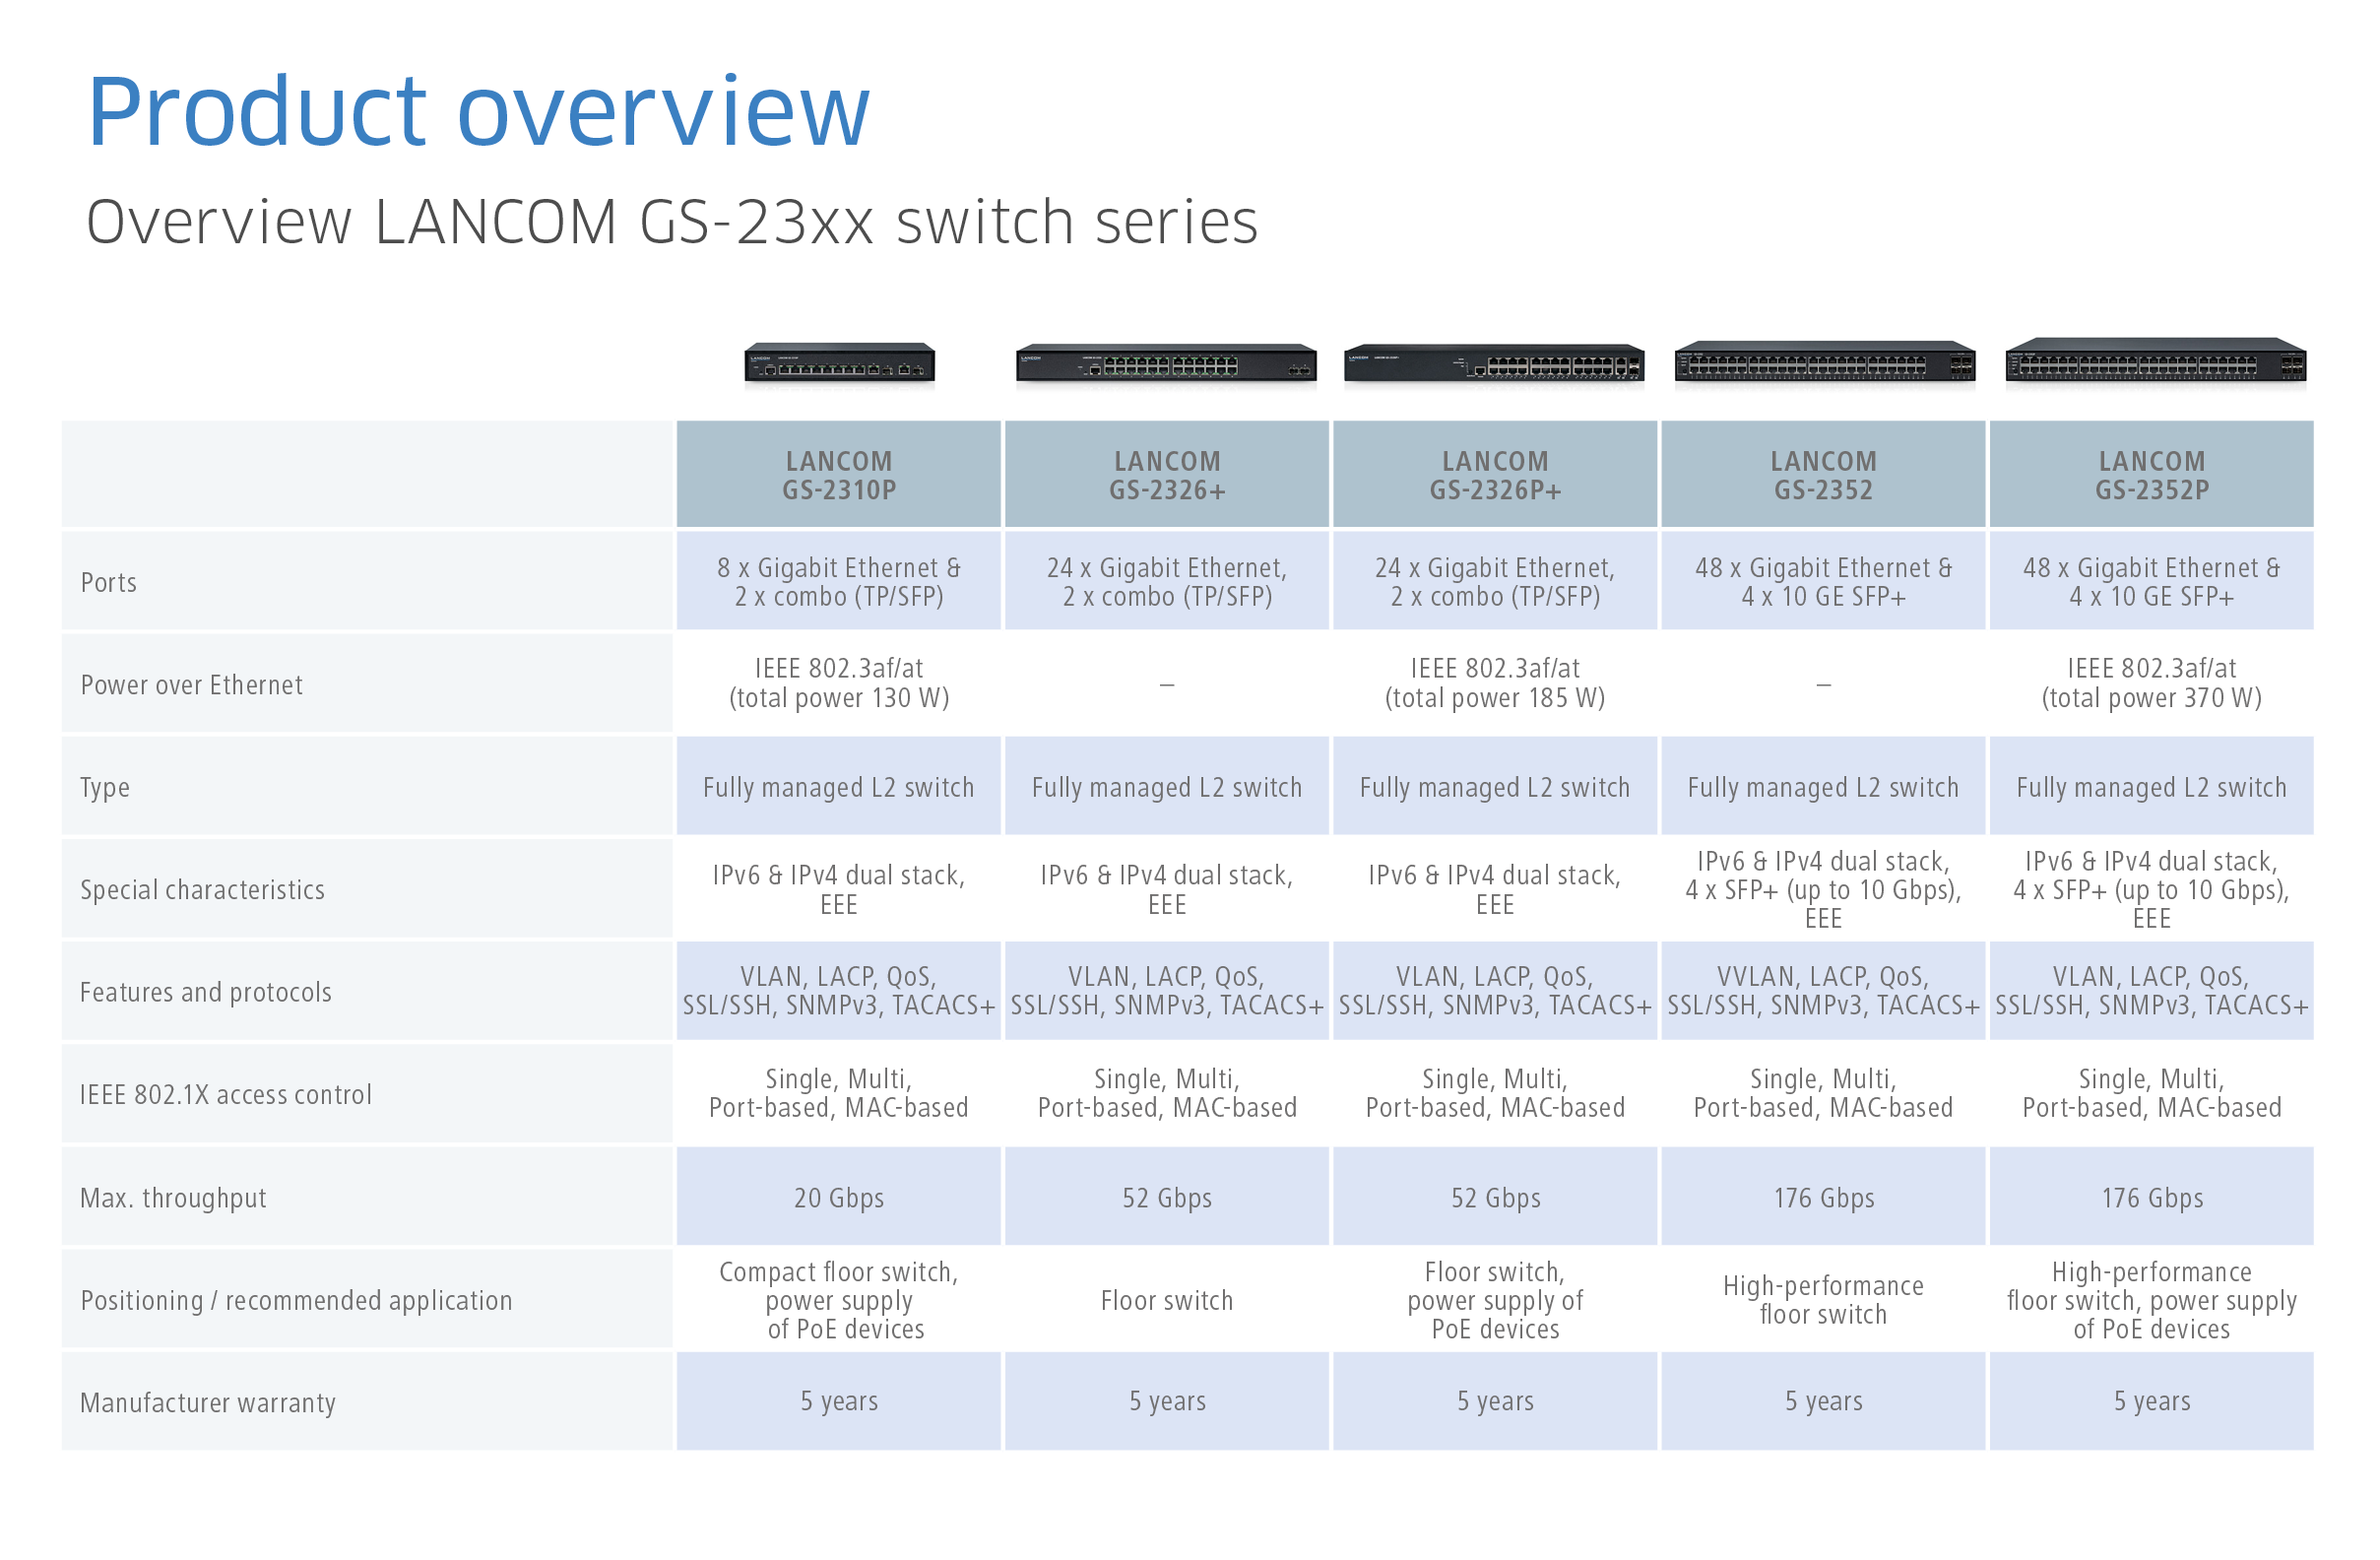 Switches Lancom Systems Gmbh Power Over Ethernet Switch Faqs Overview Supply